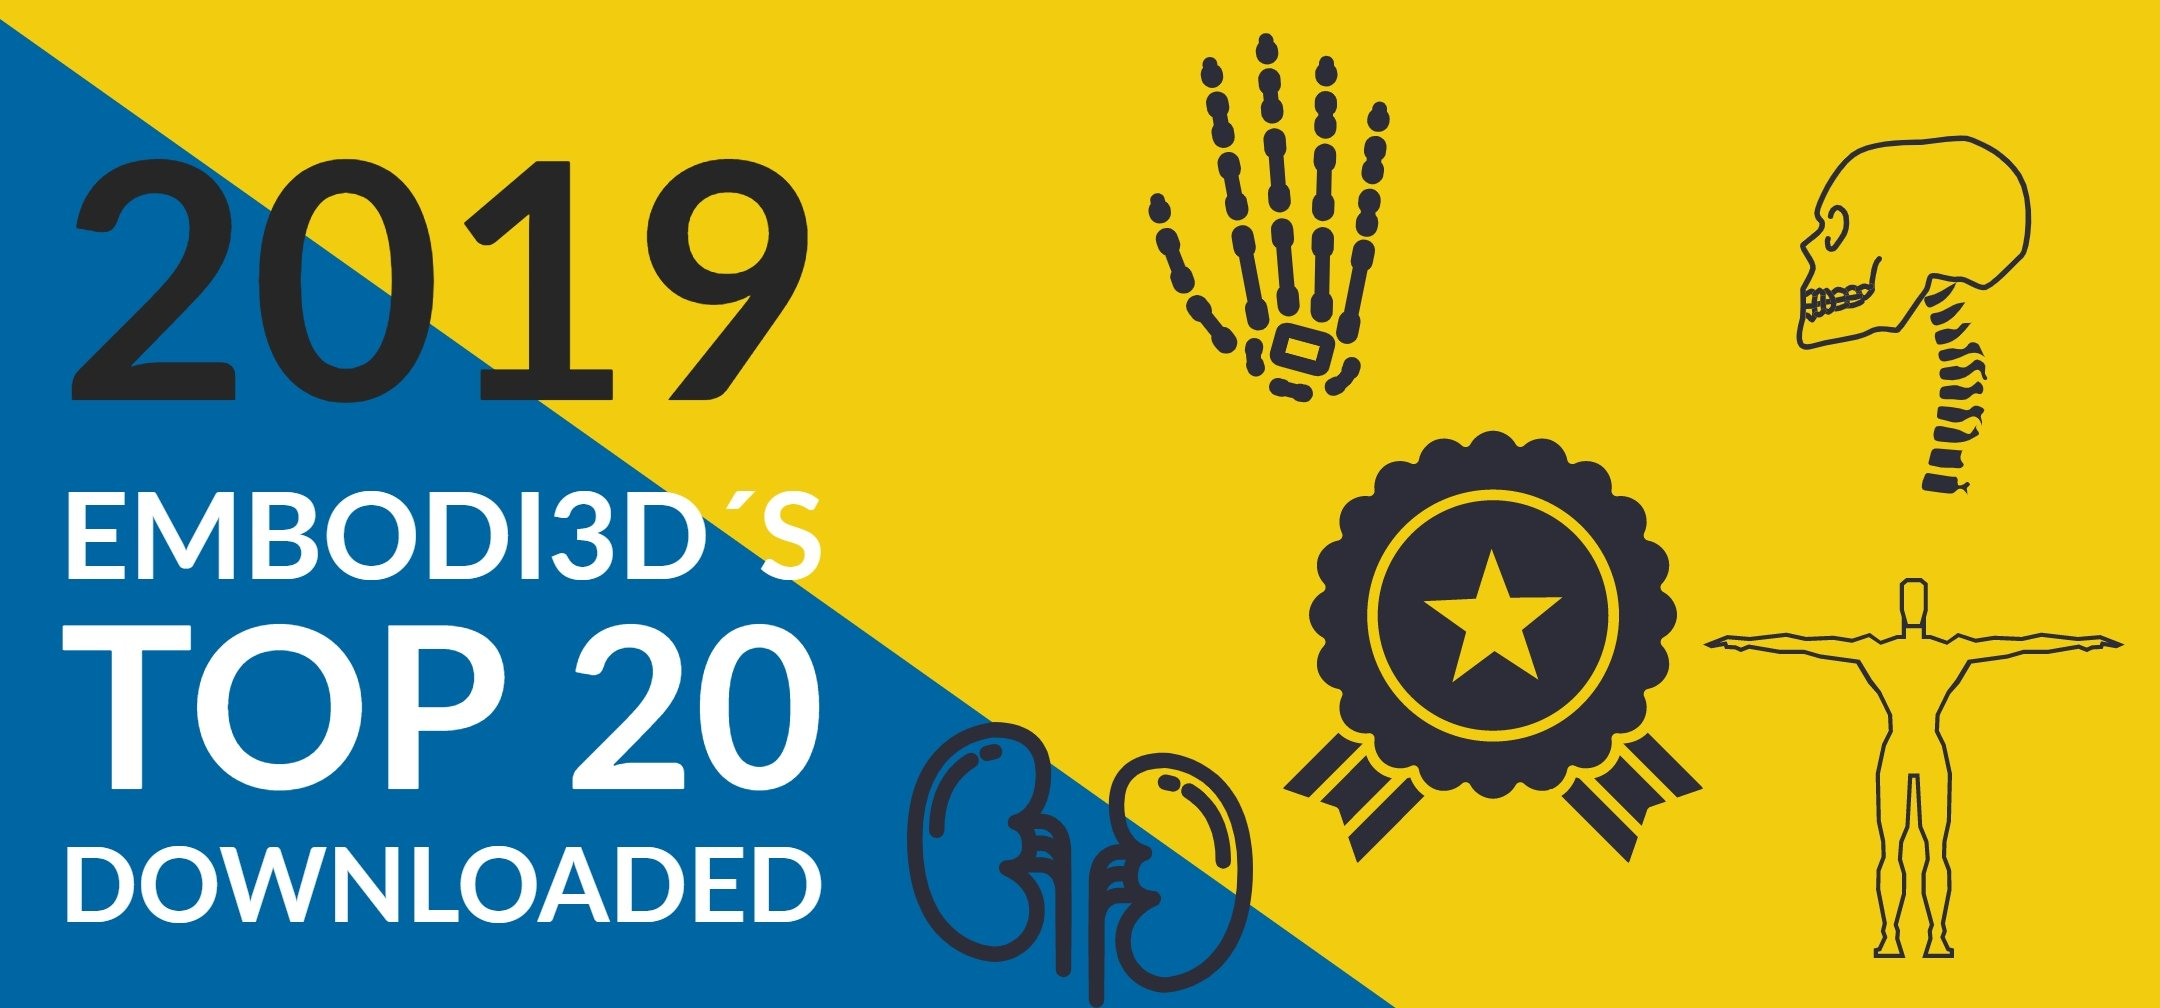 Embodi3d´s Top 20 downloaded of 2019!